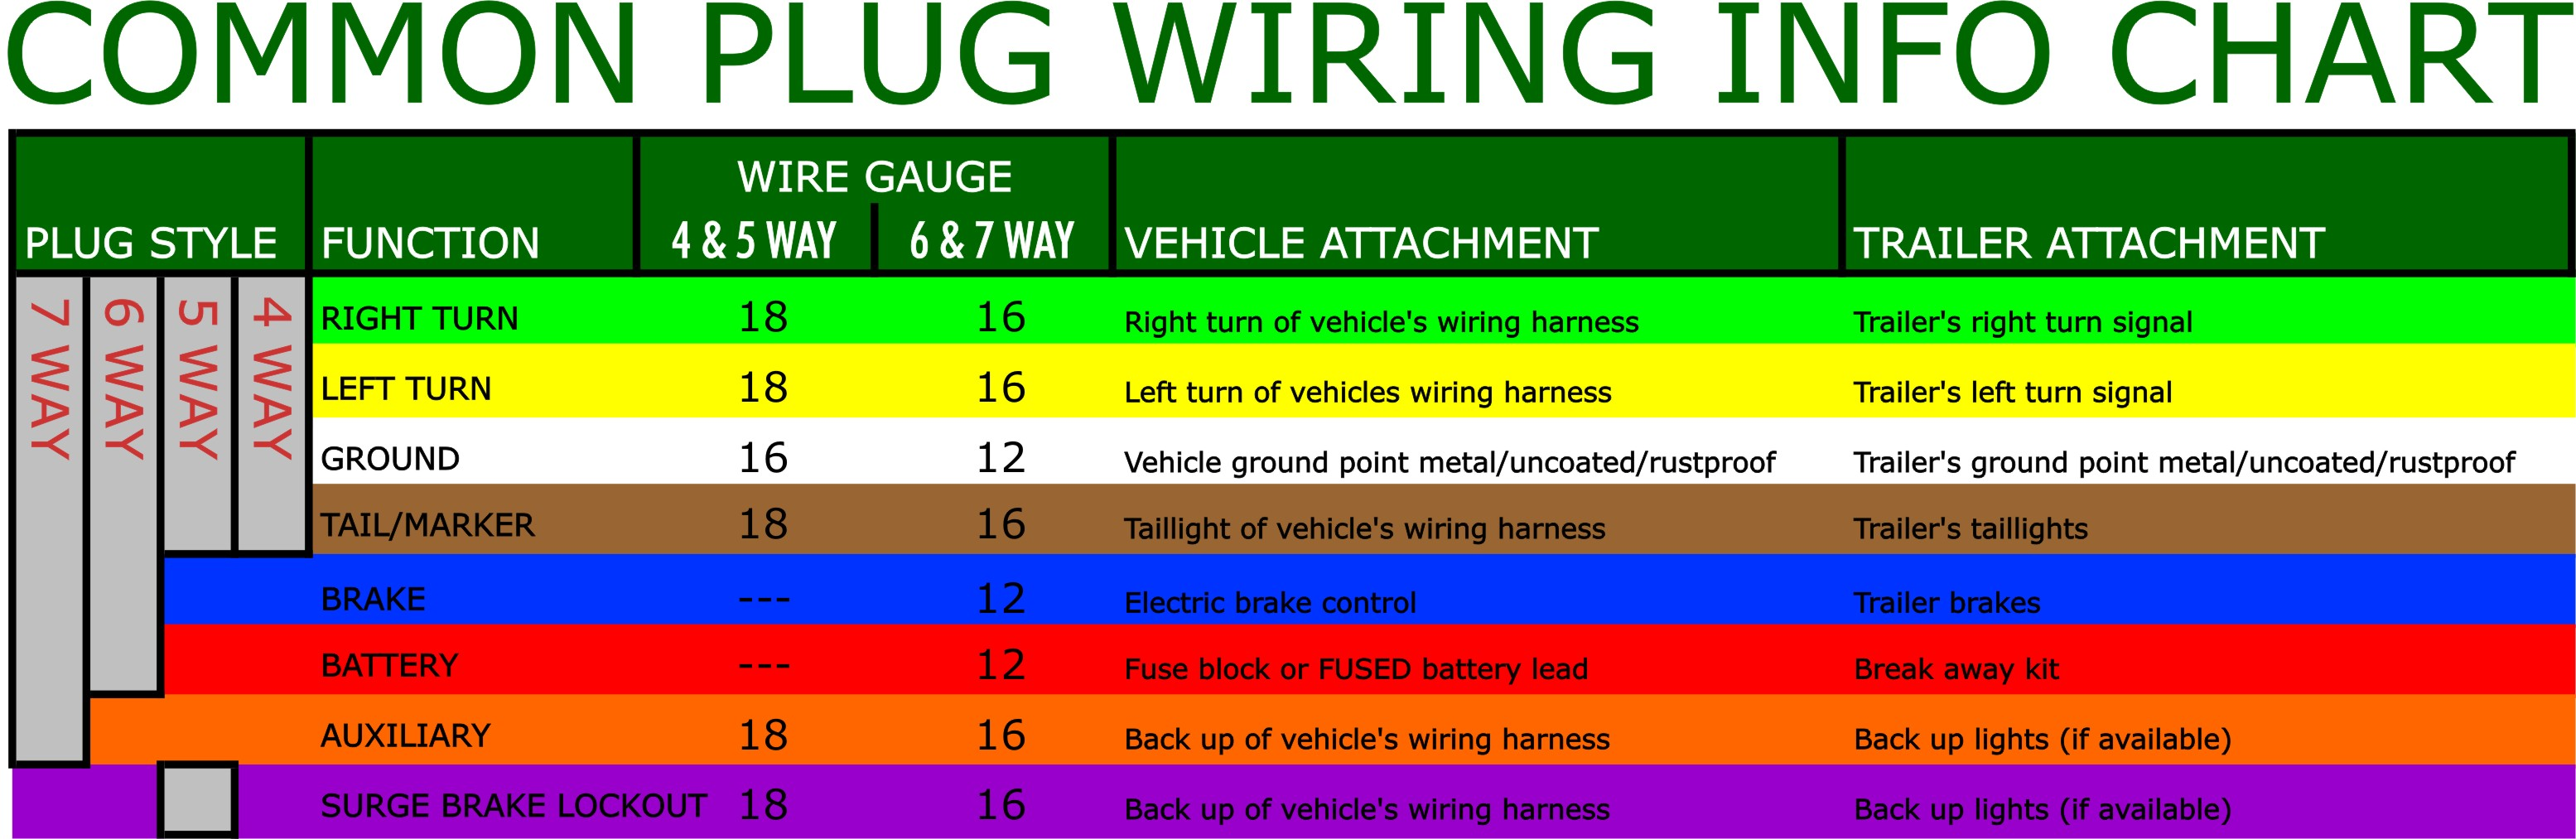 typical 4 pin trailer wiring harness simple wiring diagram rh david huggett  co uk Dodge 7 Pin Trailer Wiring 6 Pin Trailer Wiring Harness